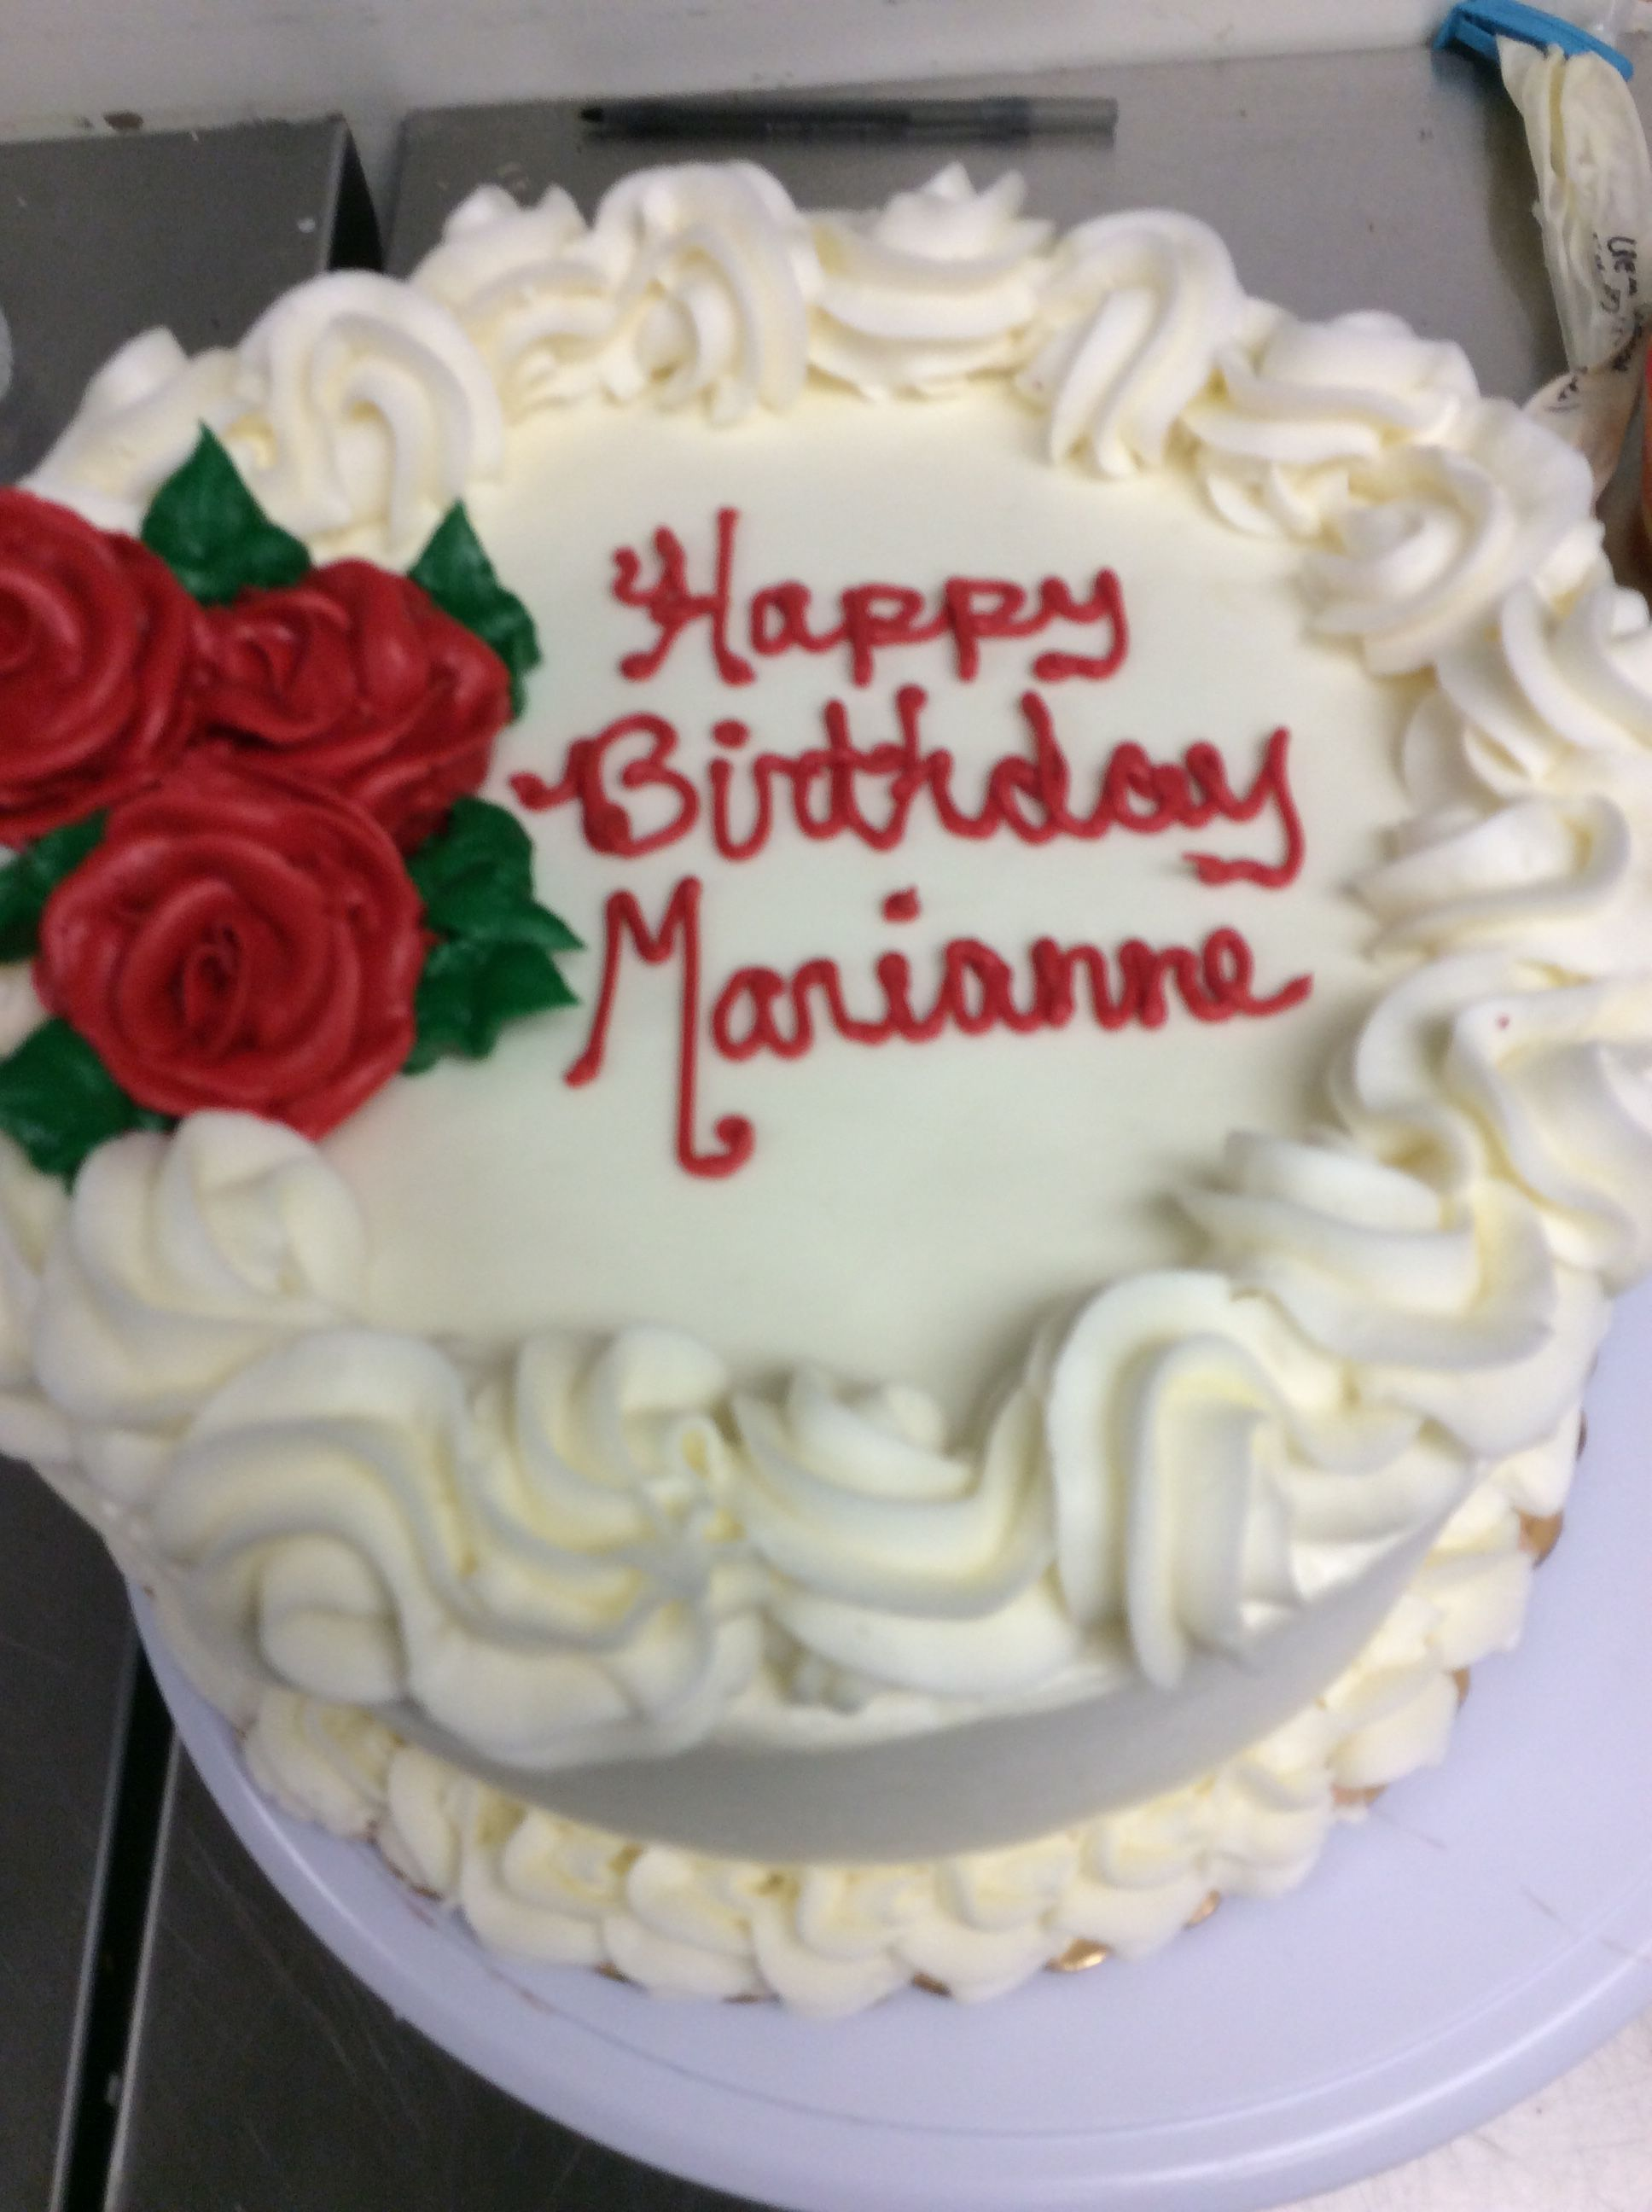 Pin By Kitchenchemistry Cupcakes On Miscellaneous Cakes Birthday Cakes Latest Cake Design Cake Designs Birthday Birthday Cake